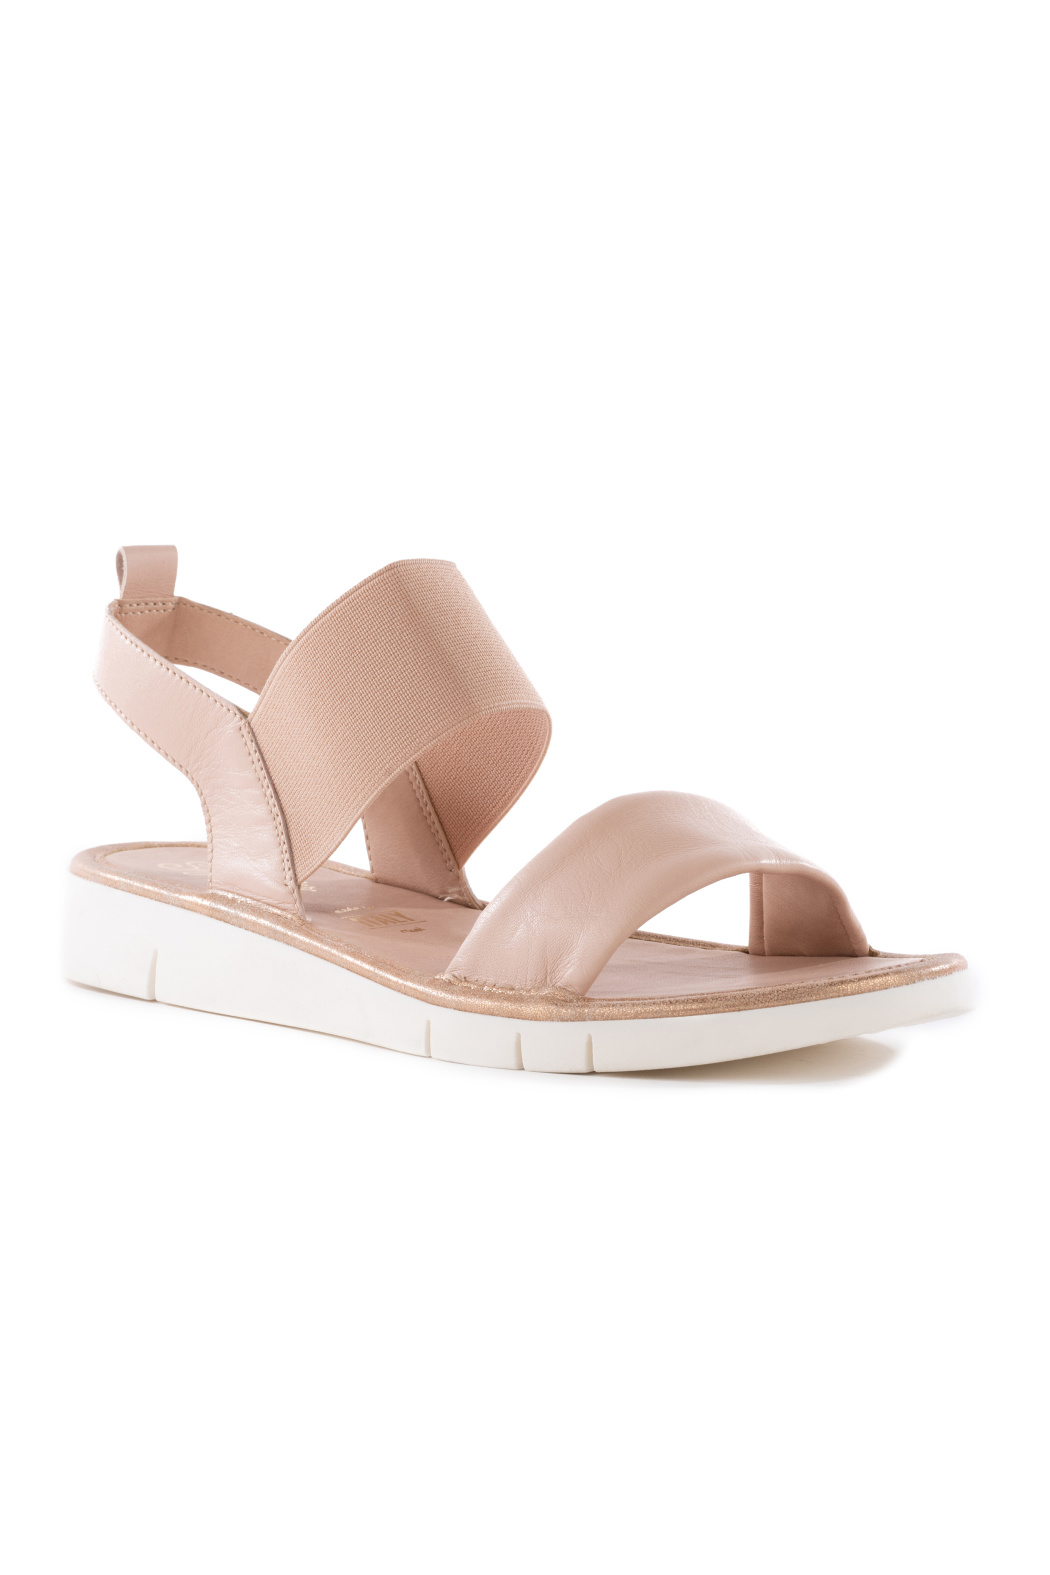 Seychelles Companion Leather Sandal - Front Cropped Image